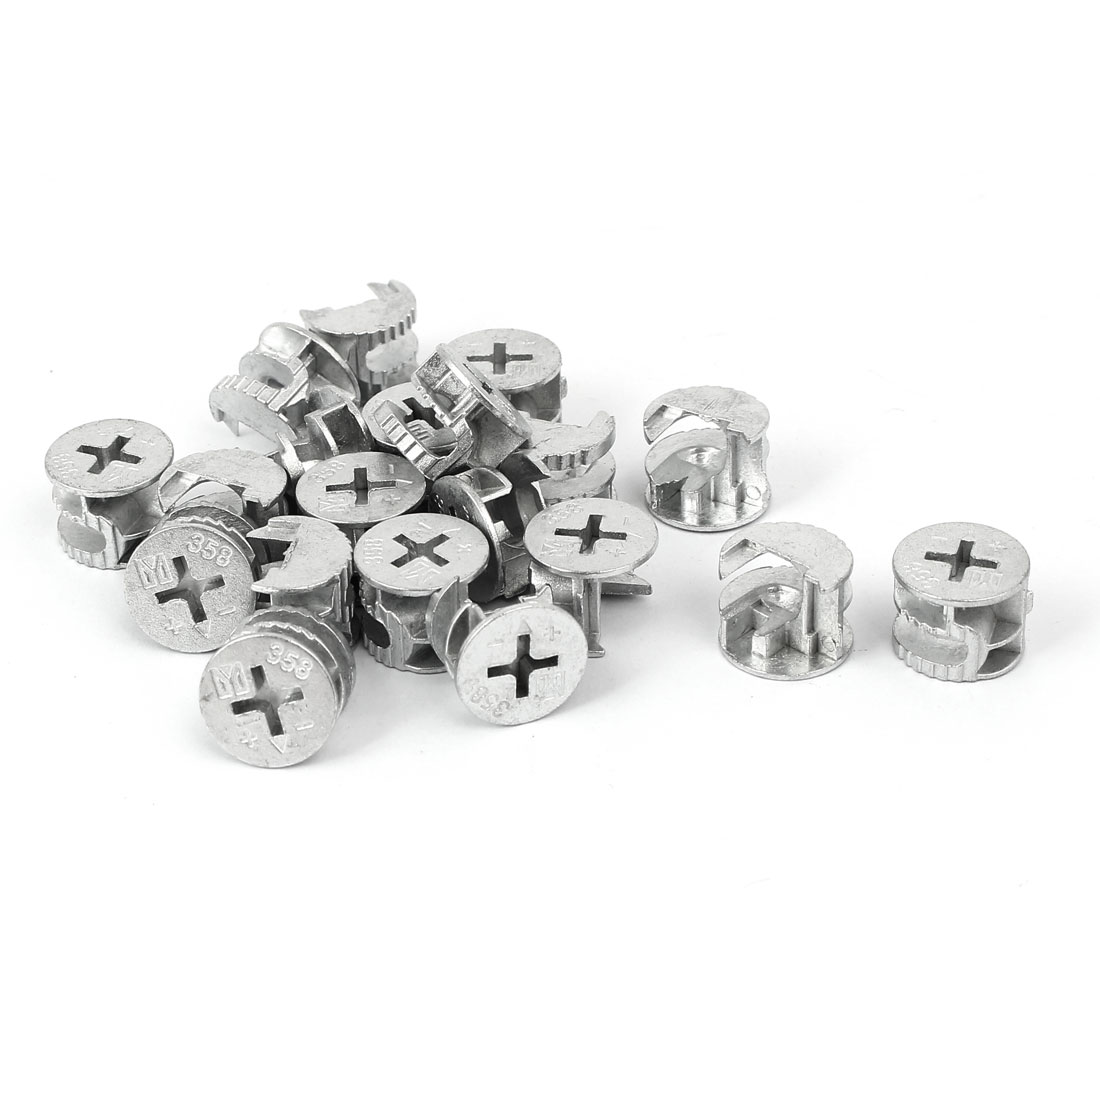 15mm Dia Head Furniture Connecting Cam Fittings Silver Tone 20pcs